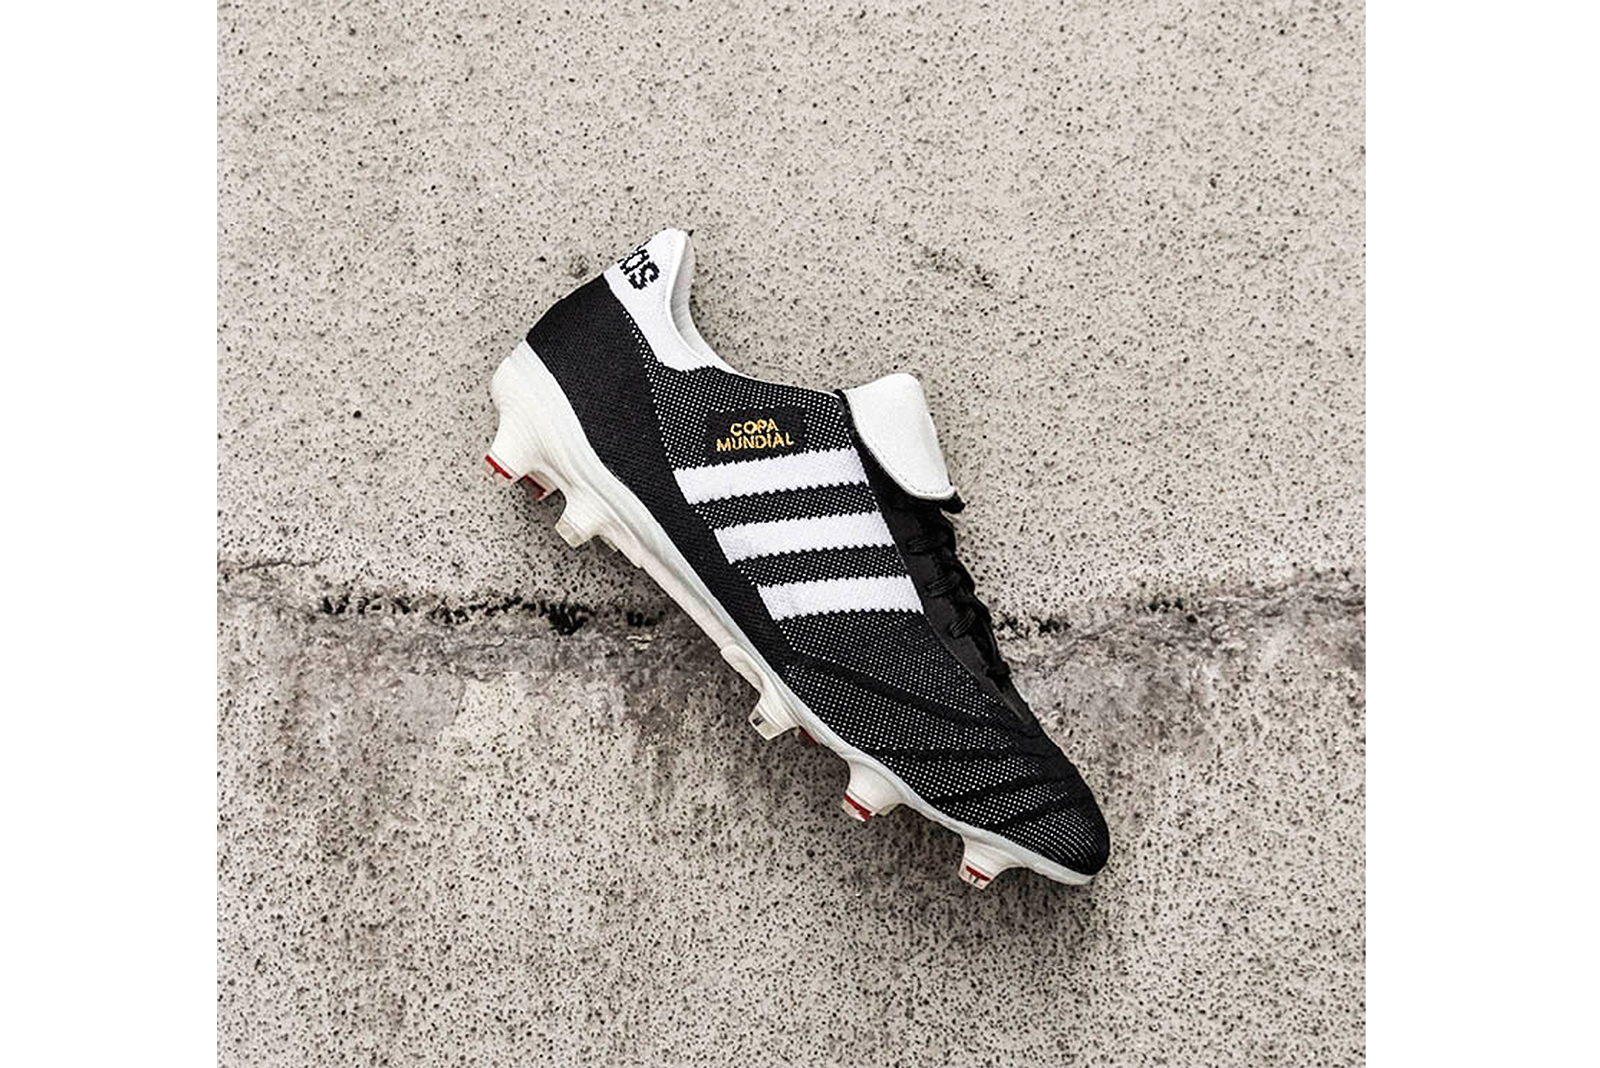 detailed look 4cc70 d37c9 adidas Football COPA 70Y FG Football Boot F36959 Core Black  Footwear  White  Red Price £219.00. Launch Thursday 10th of January ONLINE  2300GMT